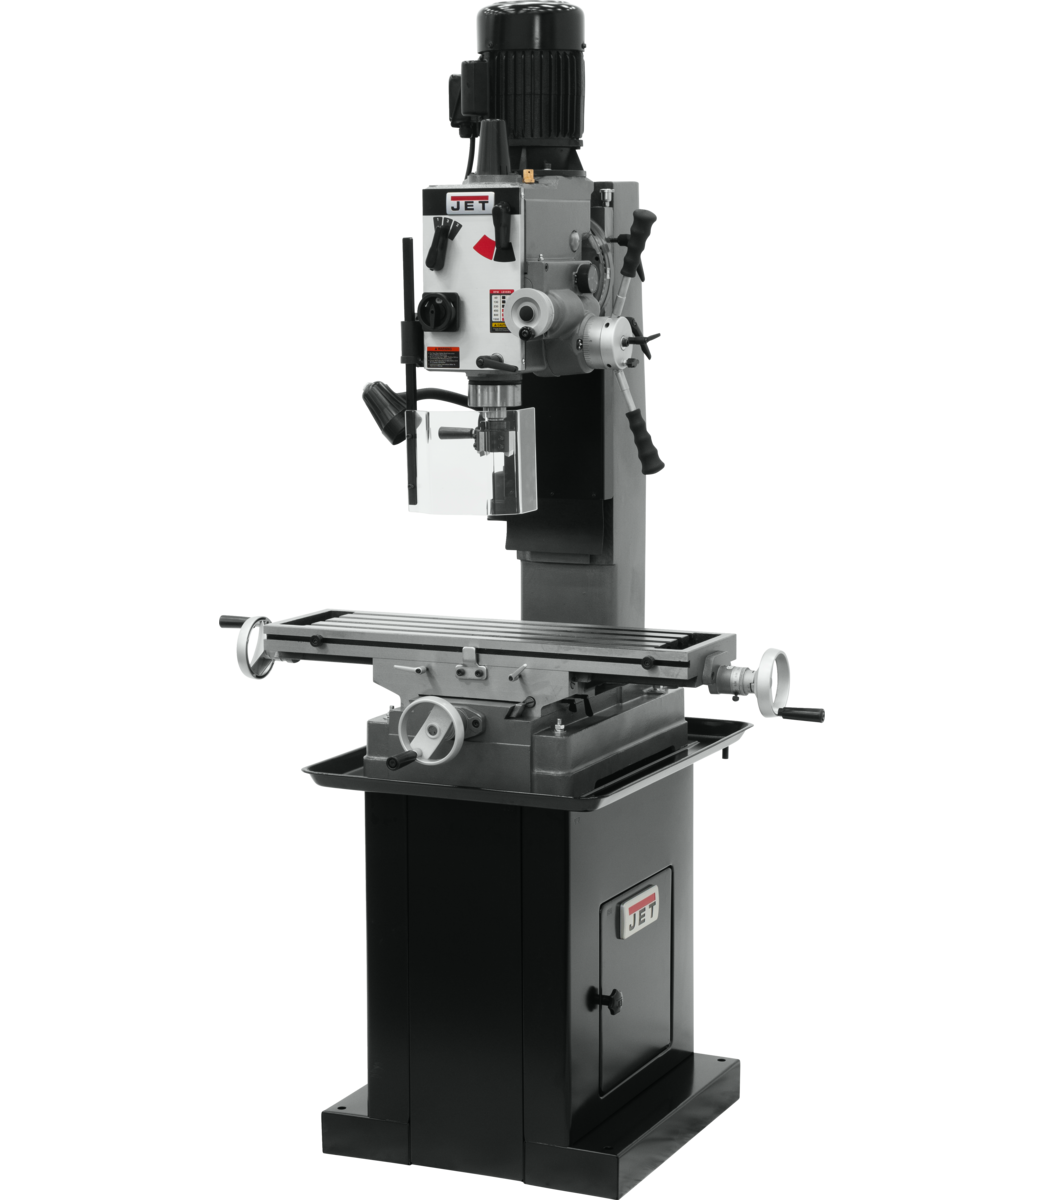 JMD-45GHPF Geared Head Square Column Mill/Drill with Power Downfeed with DP700 2-Axis DRO